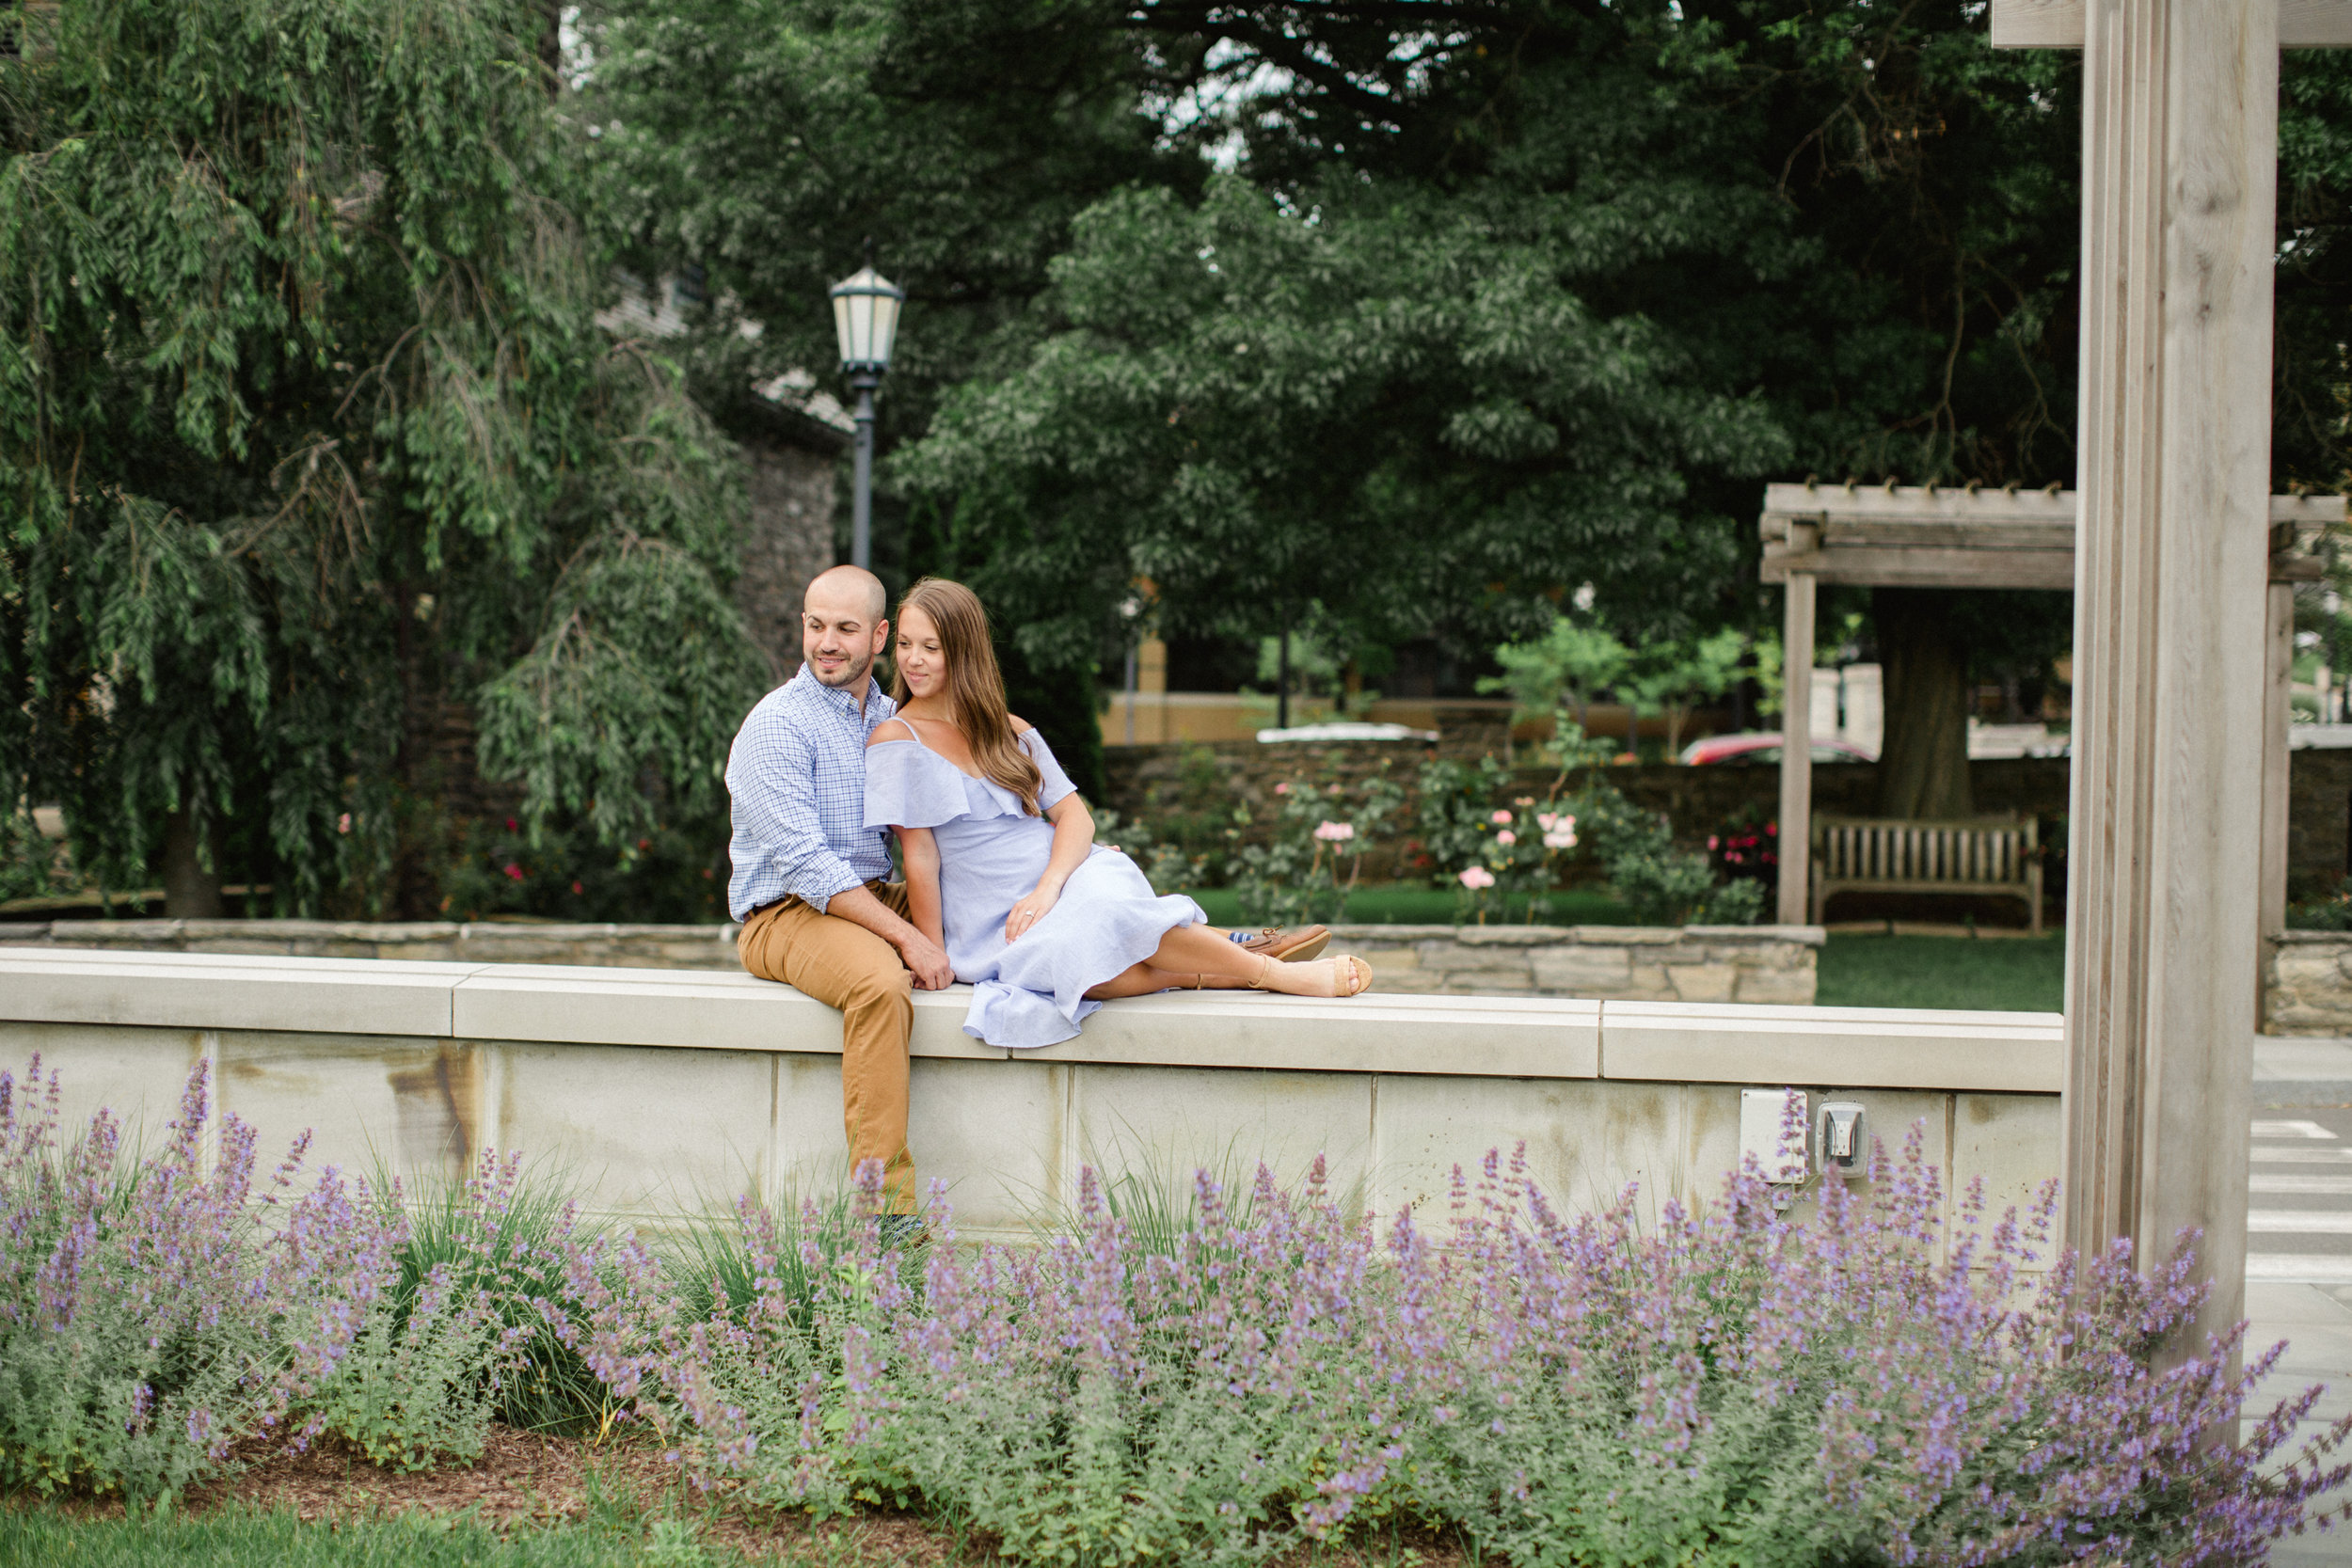 University of Scranton Engagement Session Photos_JDP-30.jpg